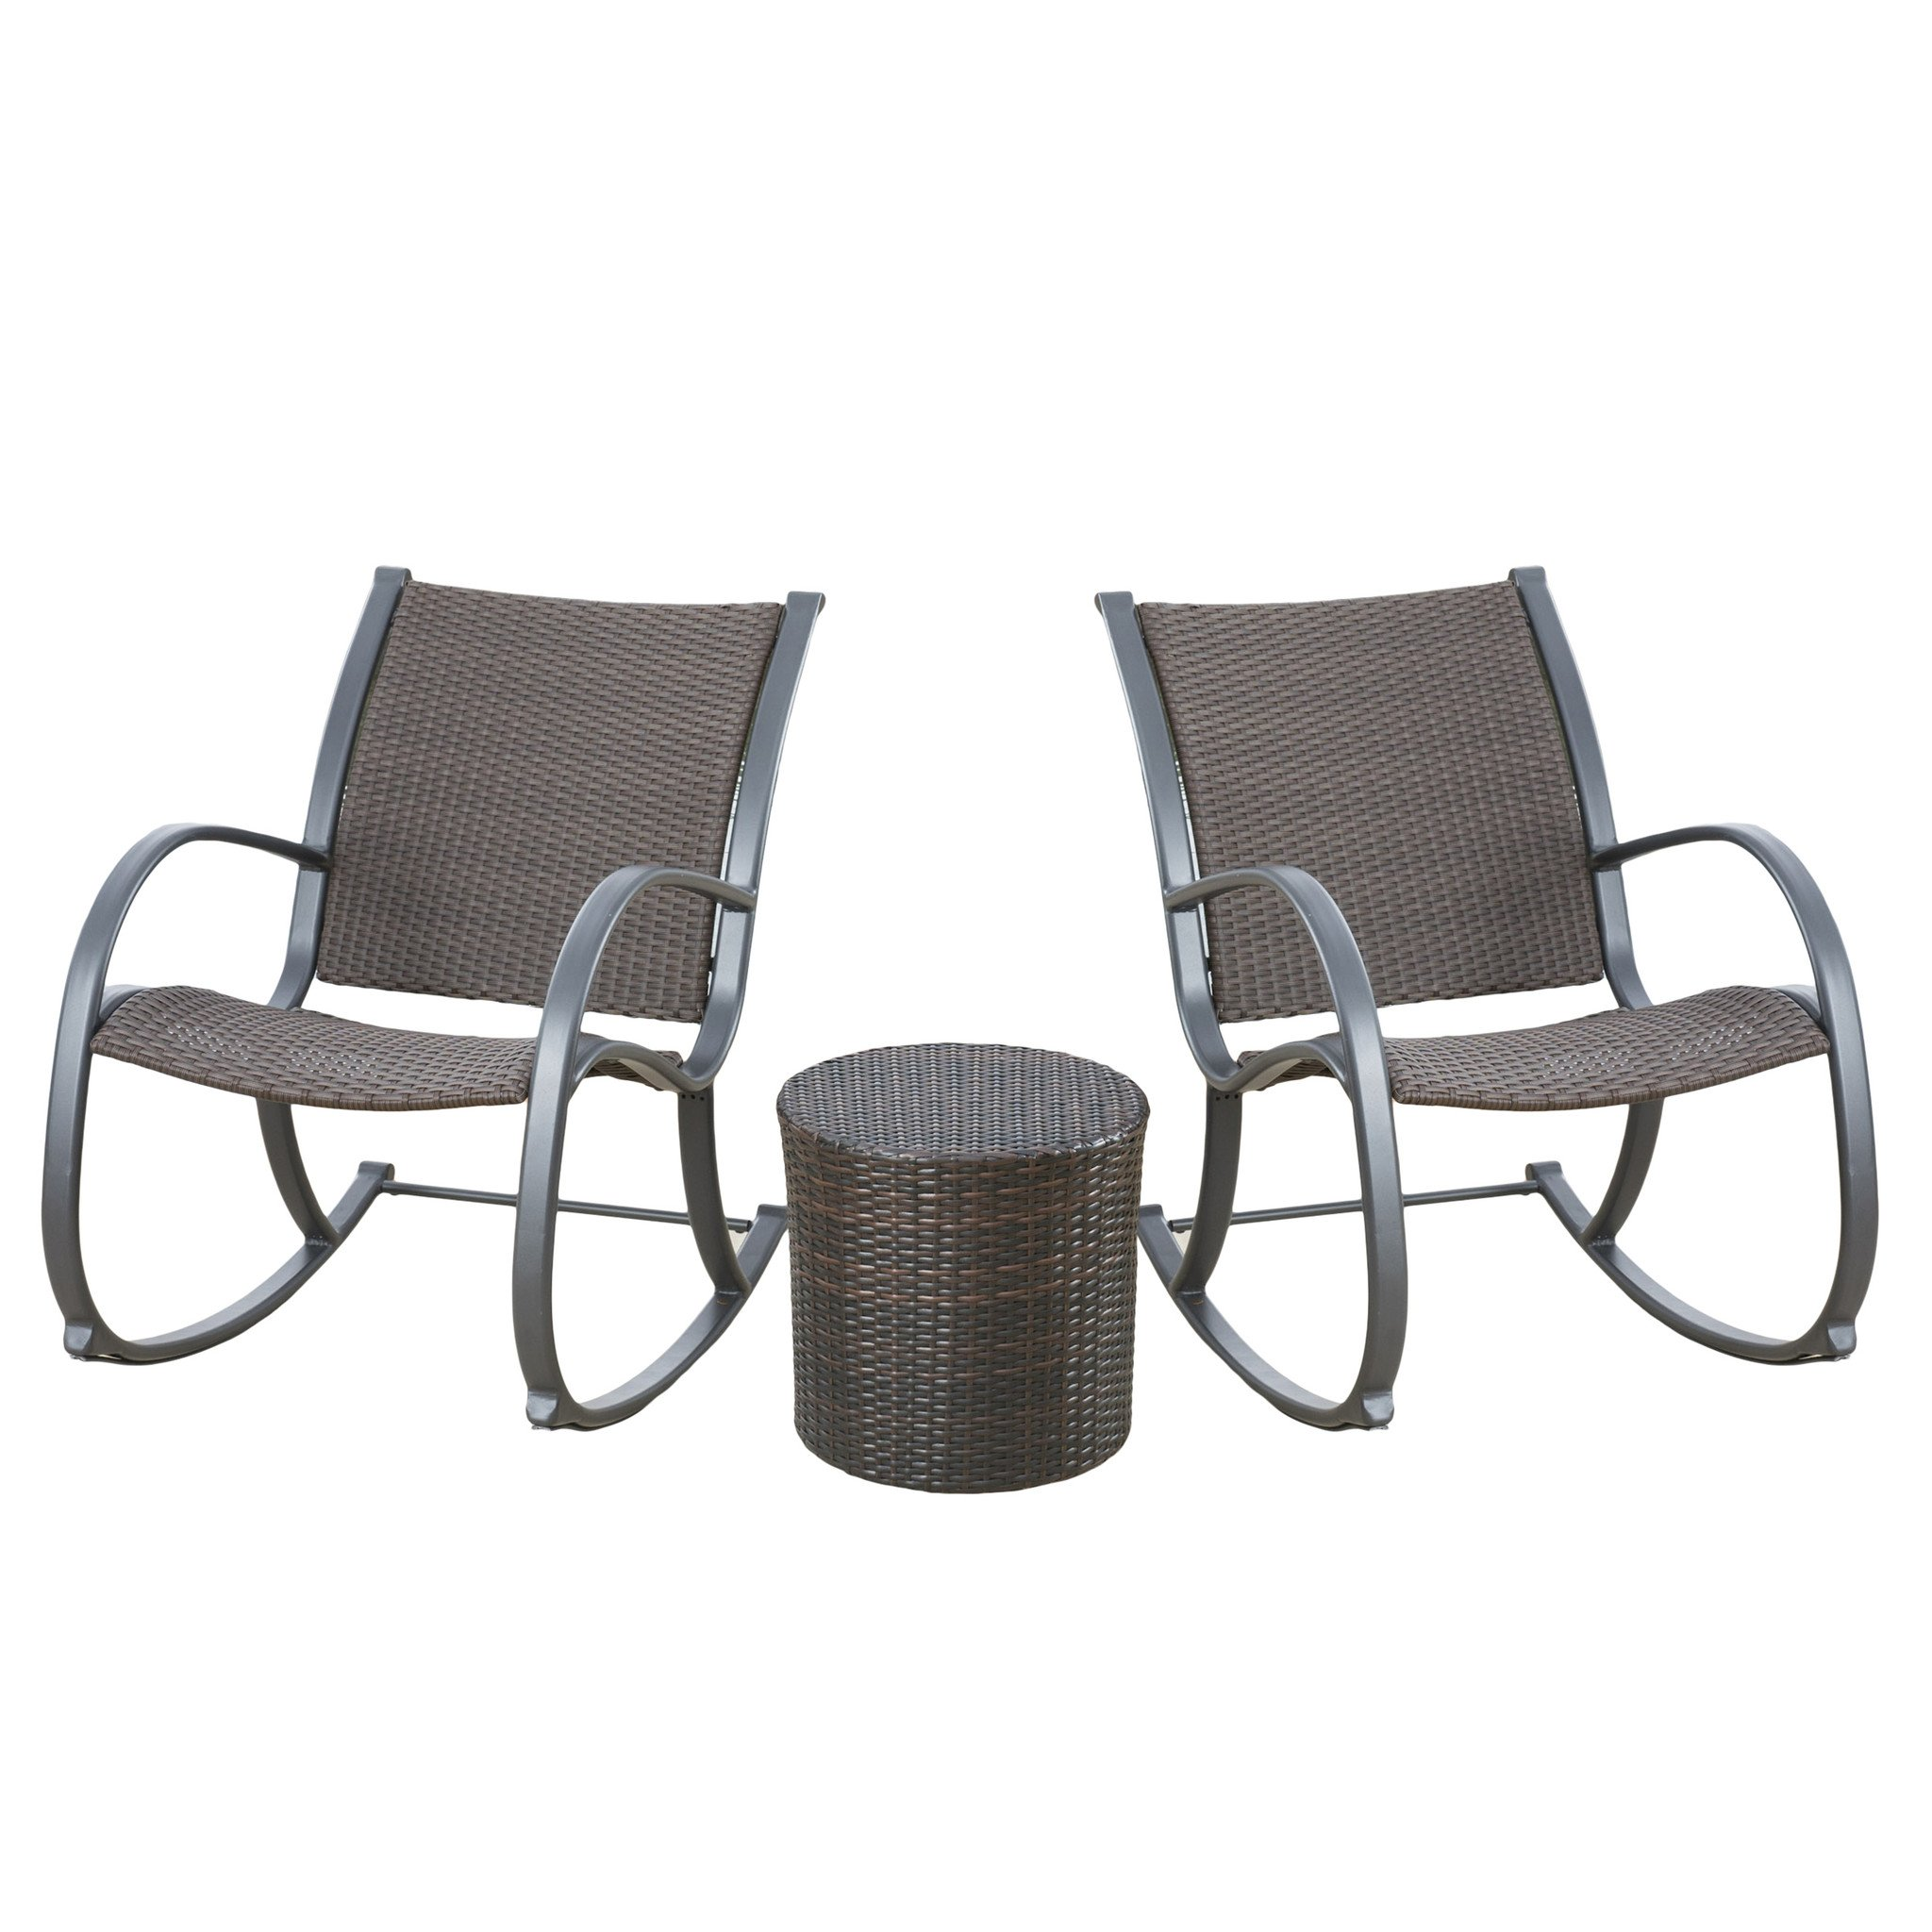 Gentry Rocking Chair Set